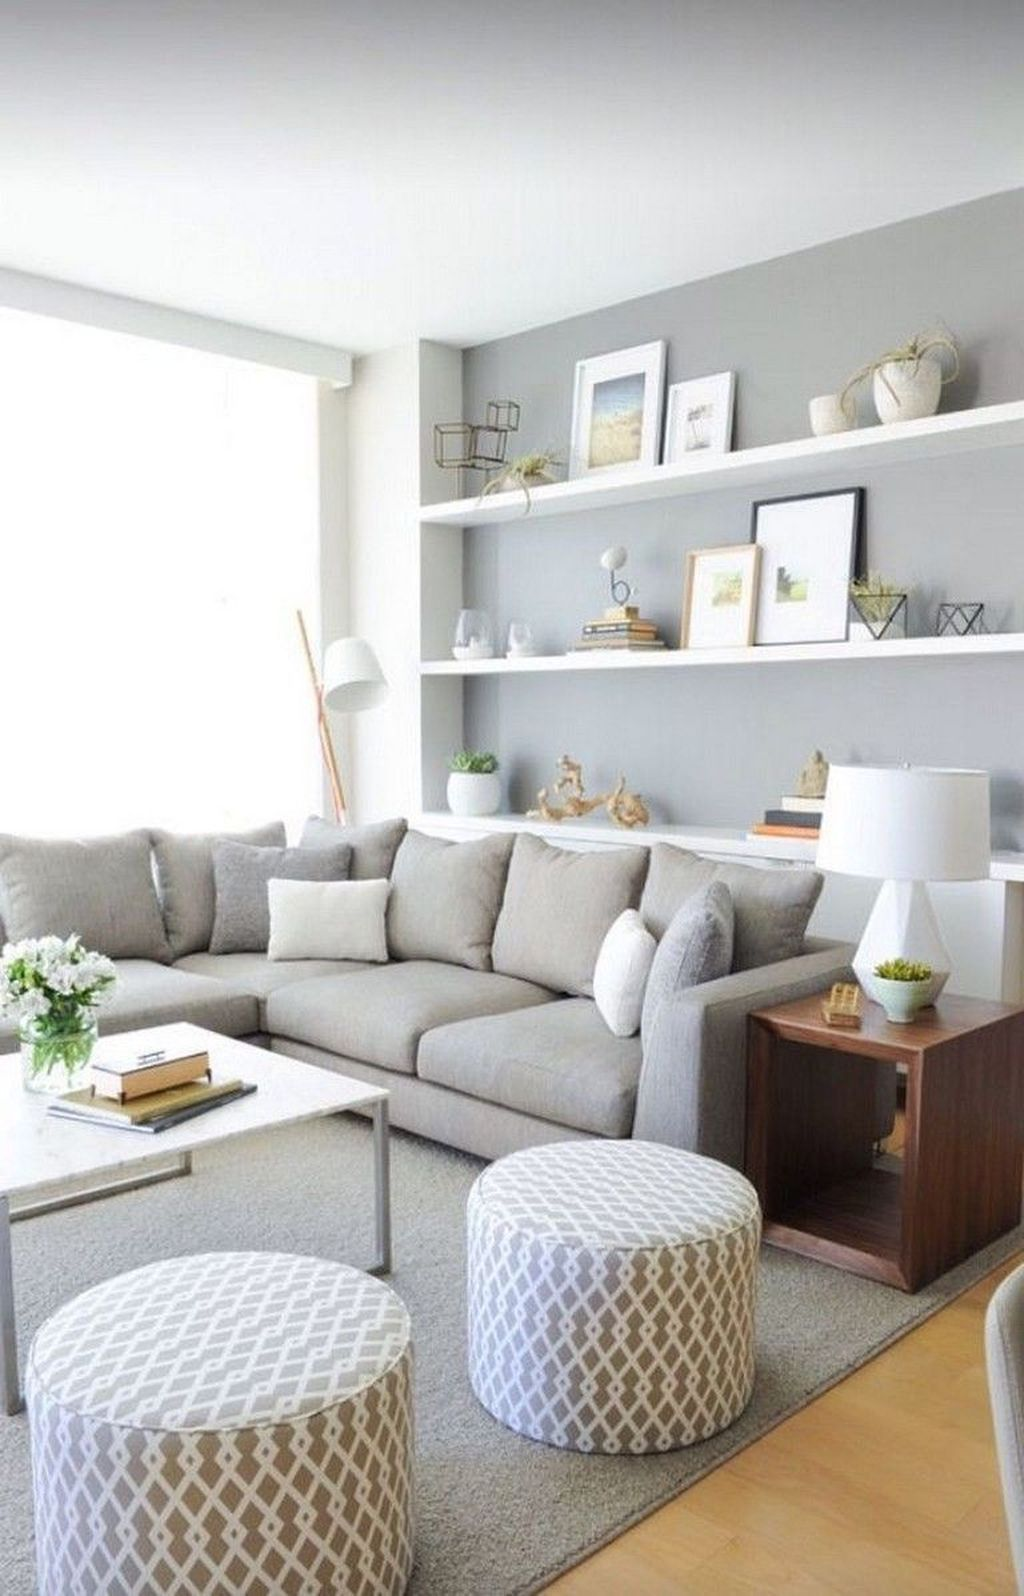 30 Marvelous Scandinavian Interior Design To Upgrade The Beautiful Of Your Living Room In 2020 Small Living Room Design Small Living Room Decor Living Room Without Tv